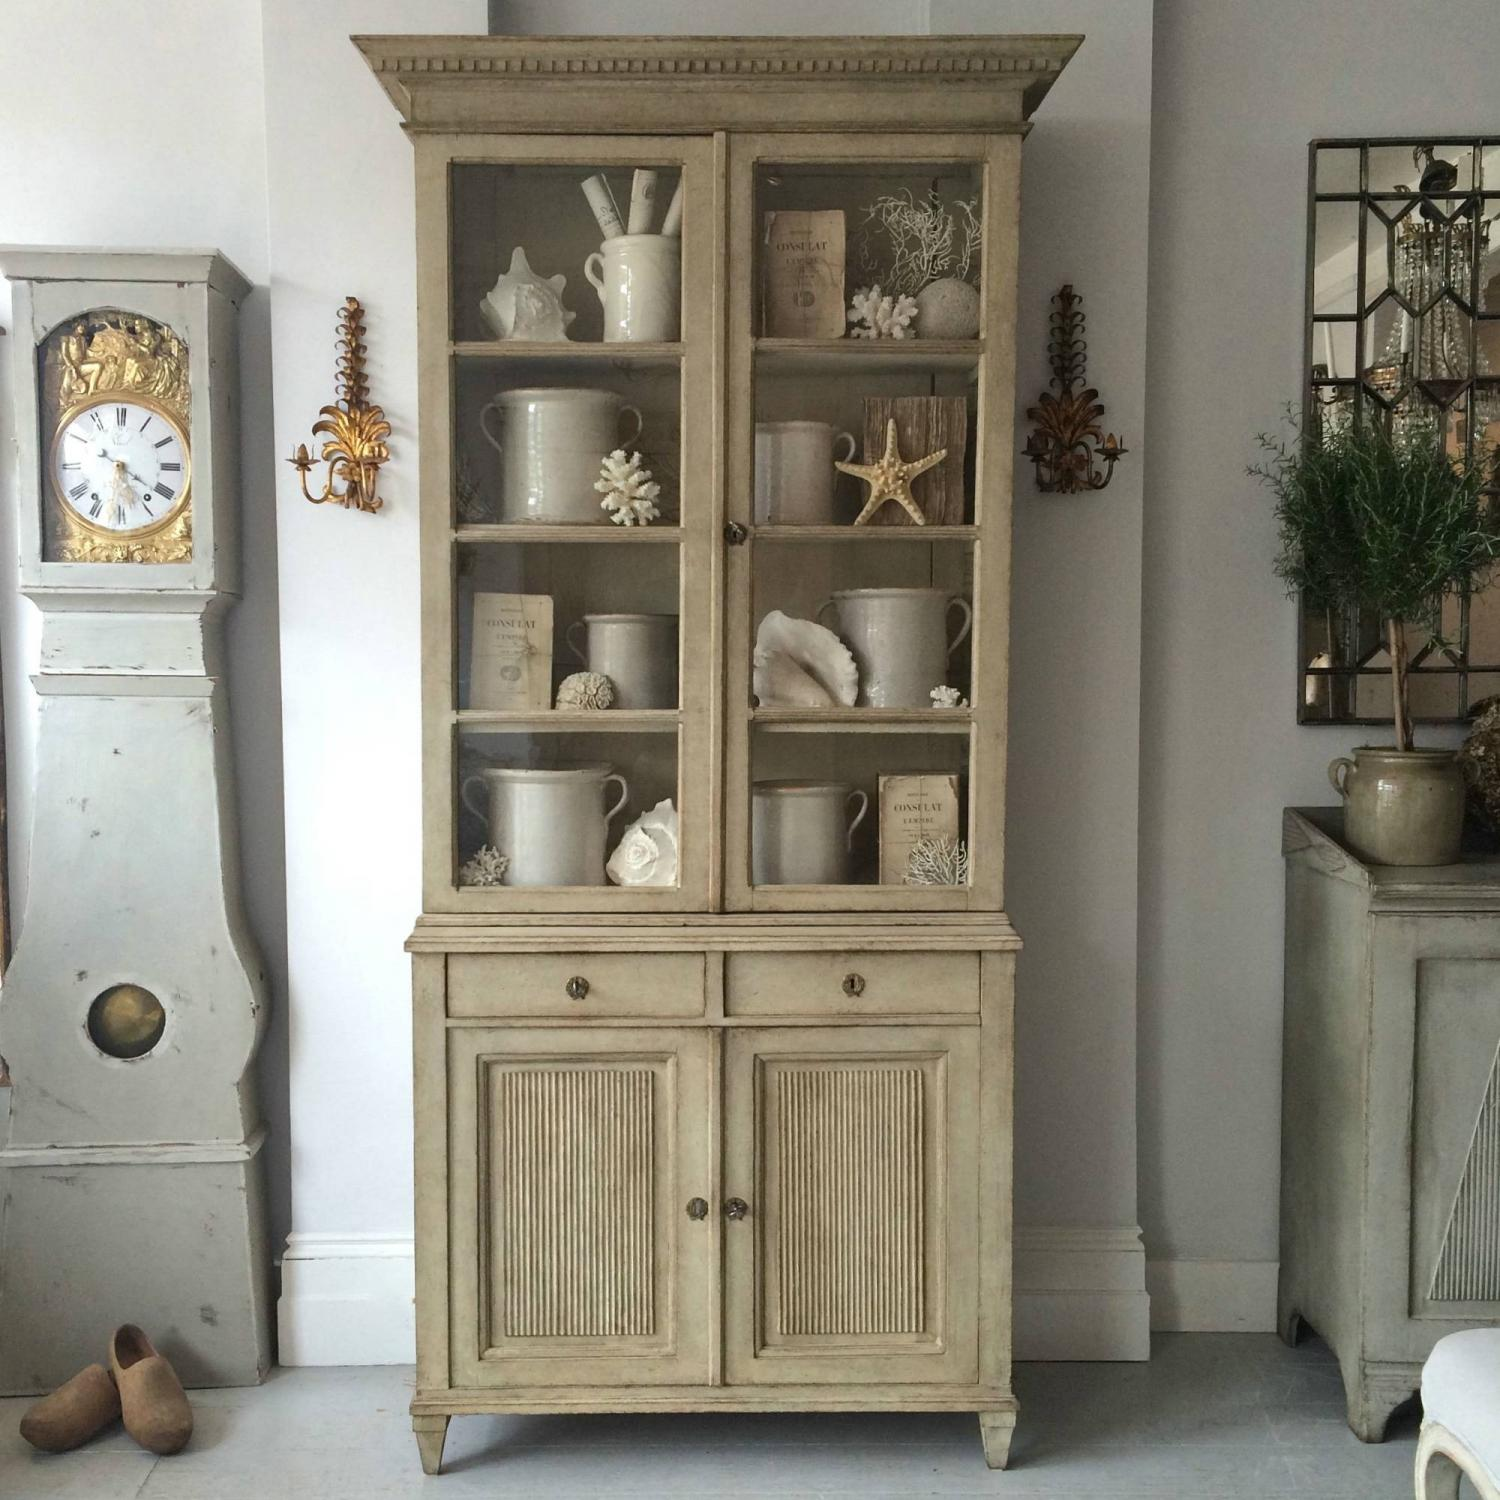 MAGNIFICENT TALL GUSTAVIAN STYLE VITRINE CABINET